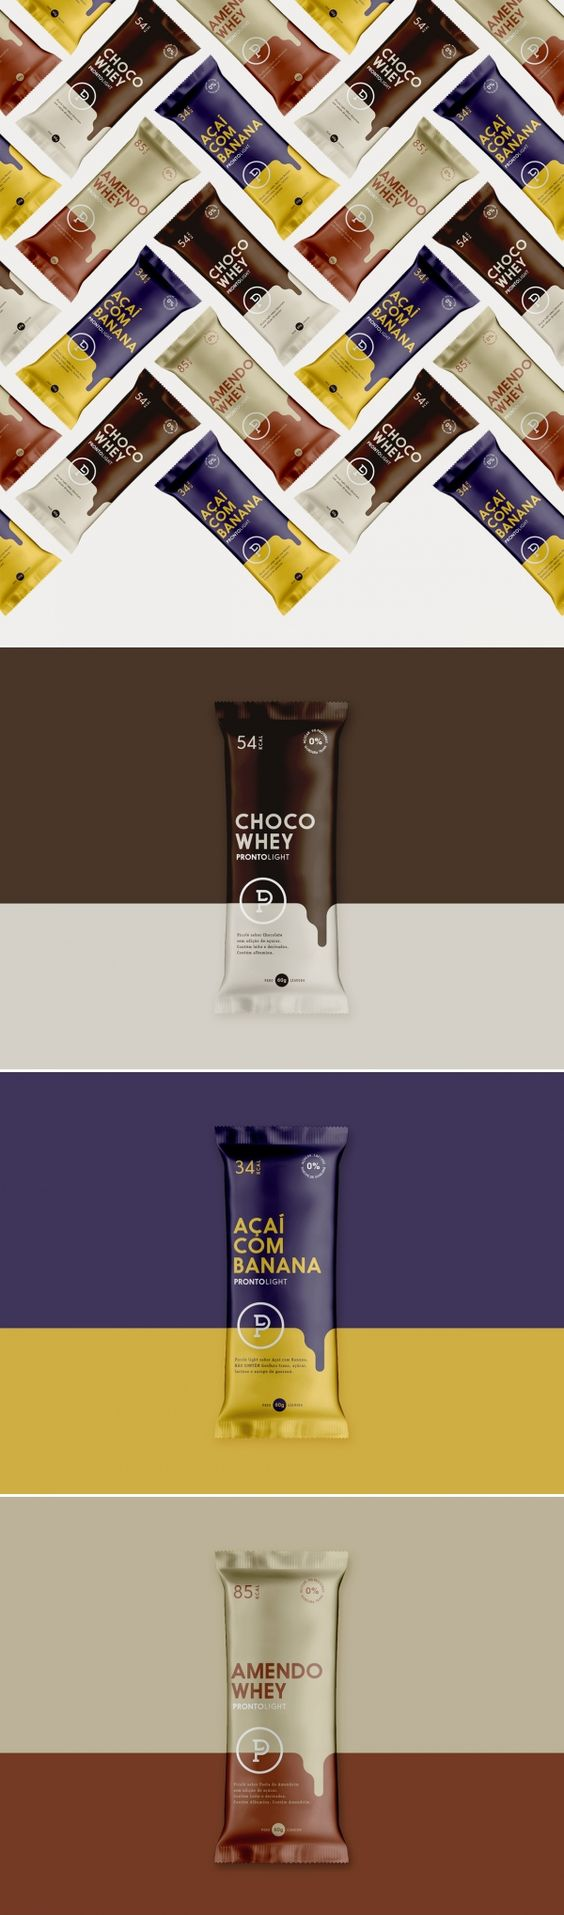 design_packaging06